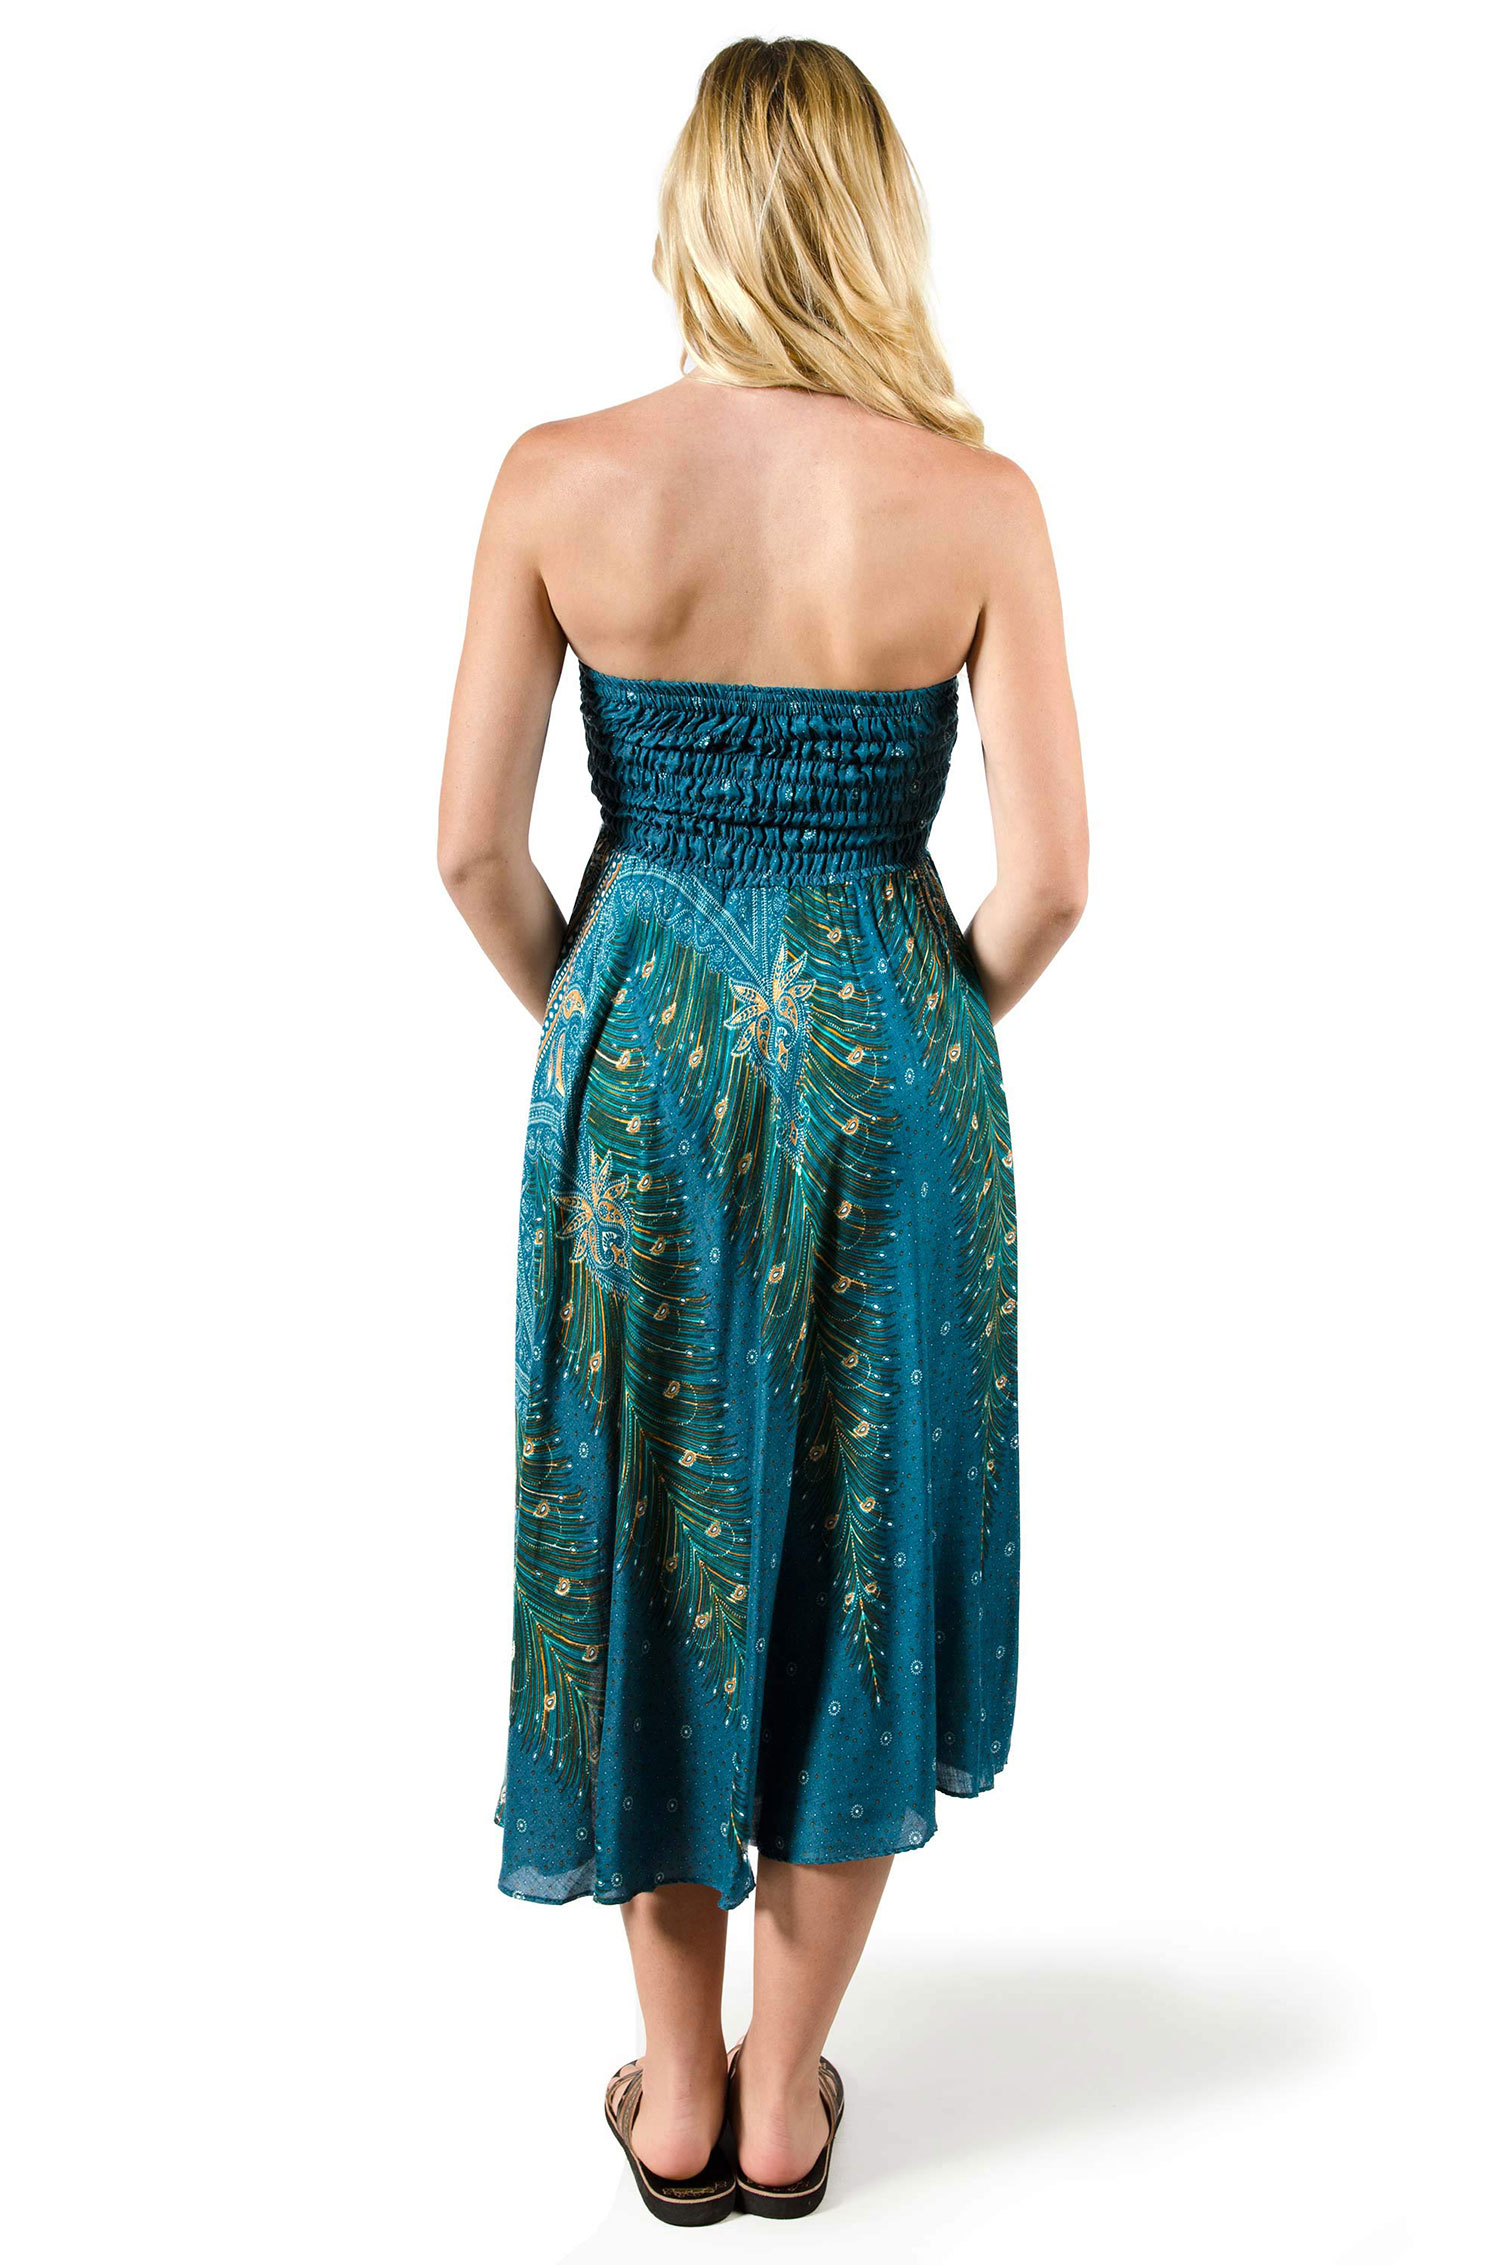 Convertible Print Dress / Skirt - Teal - 3543T